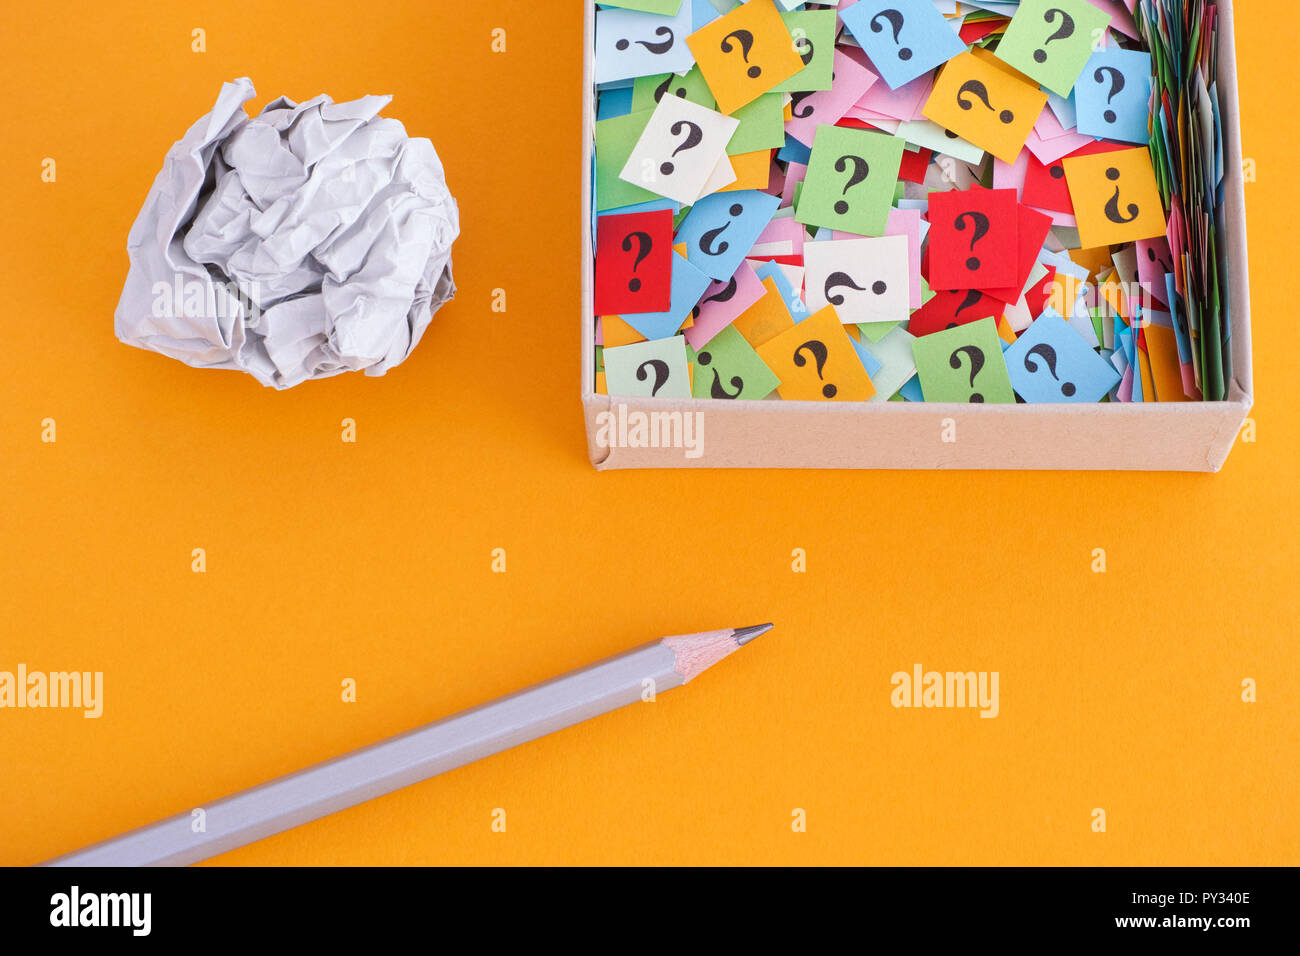 Pencil with crumpled paper ball and question marks in a paper box on yellow background. Concept image. Close up. Stock Photo